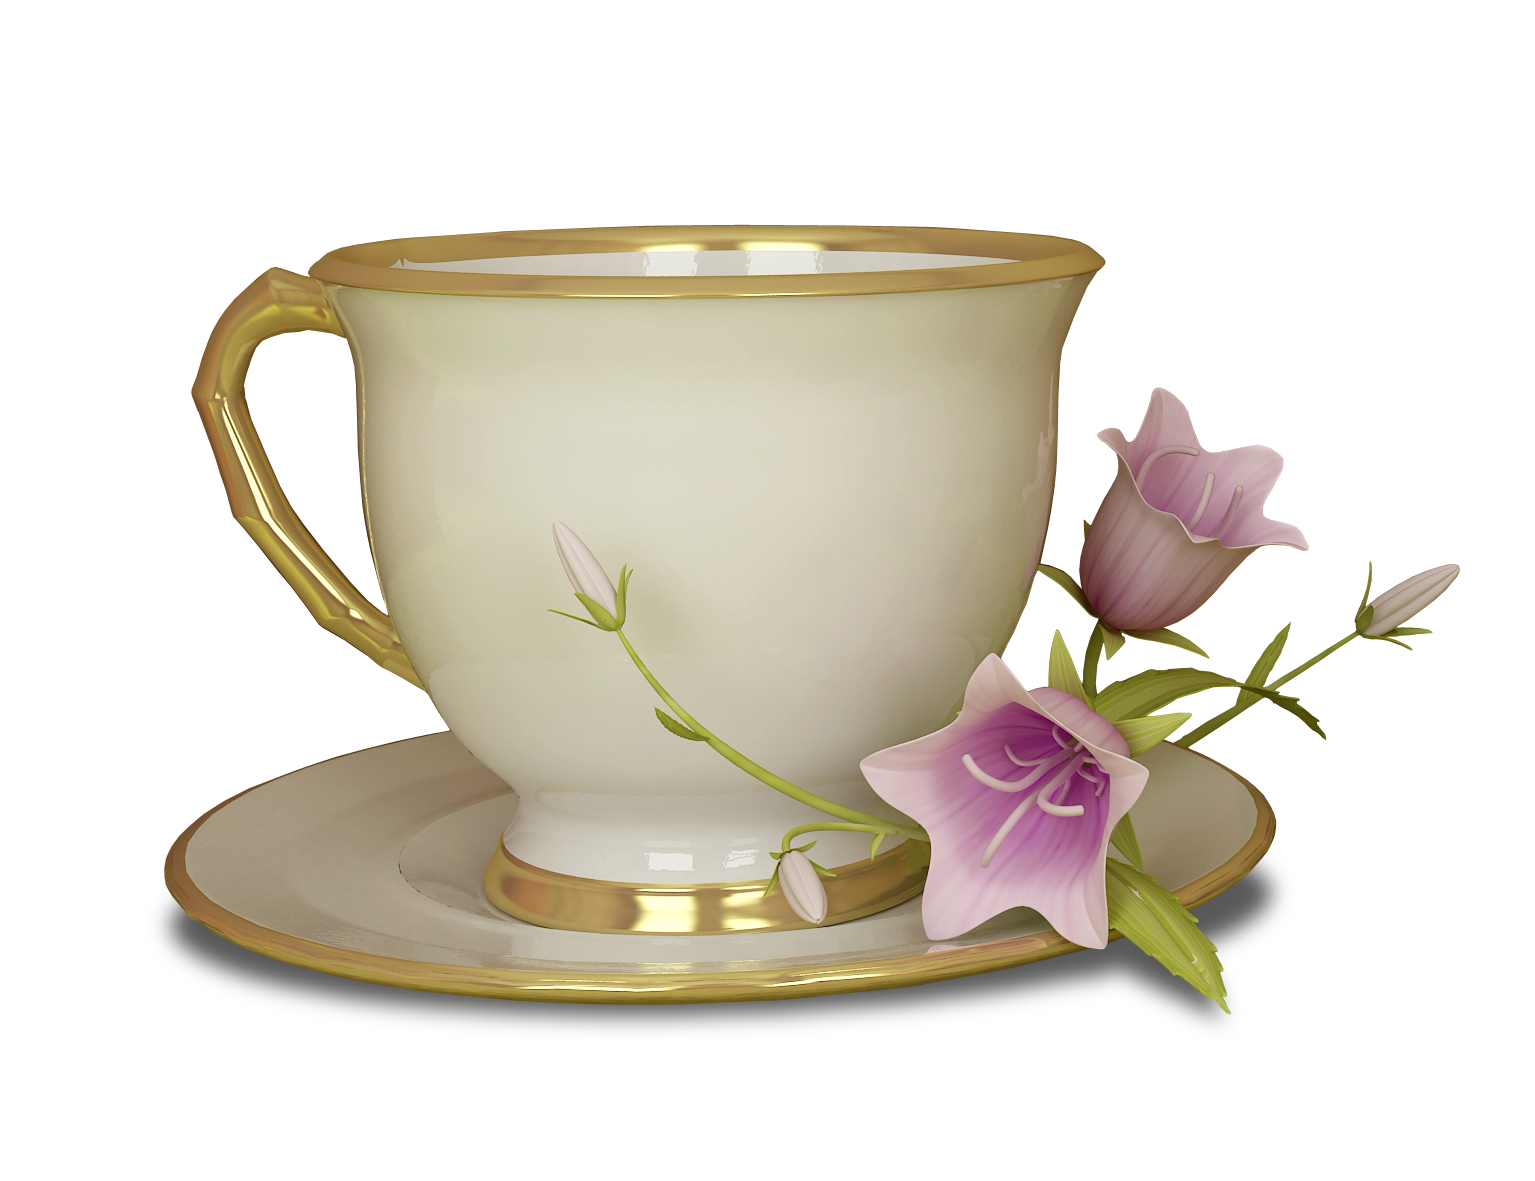 Free Tea Cups Png, Download Free Clip Art, Free Clip Art on.